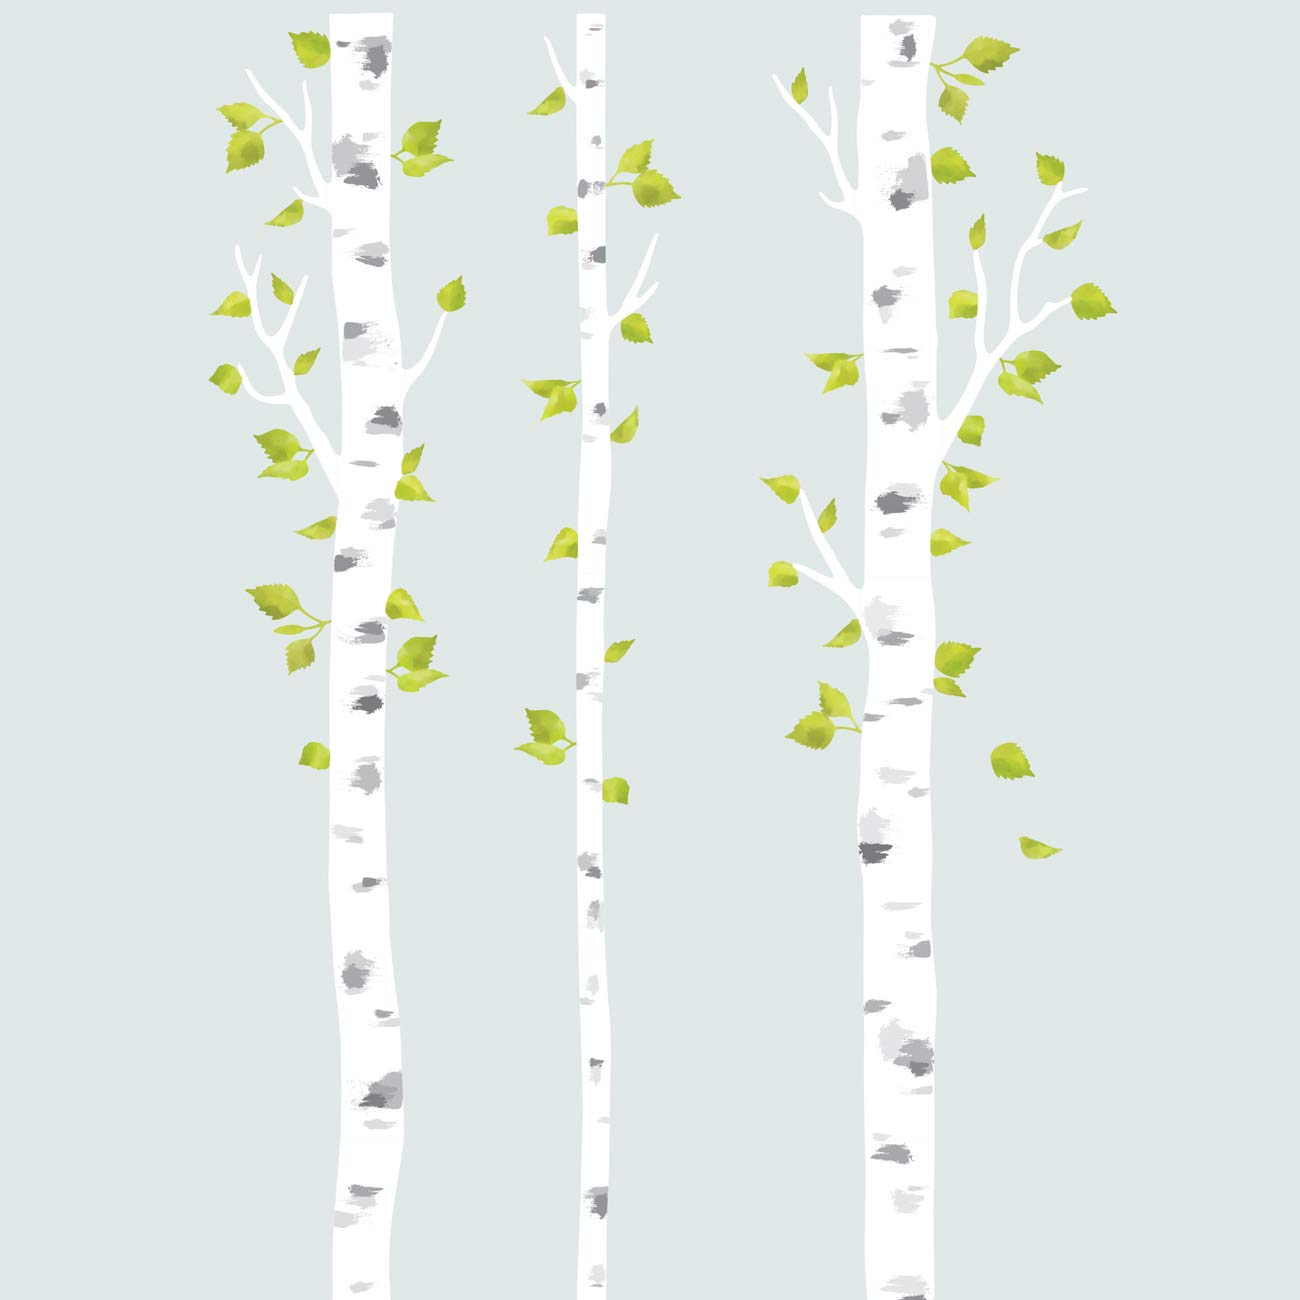 DECOWALL DLT-1714 White Birch Trees Fabric Wall Decals Wall Stickers Removable Reusable Peel and Stick Non Toxic for Kids Nursery Bedroom Living Room by Decowall